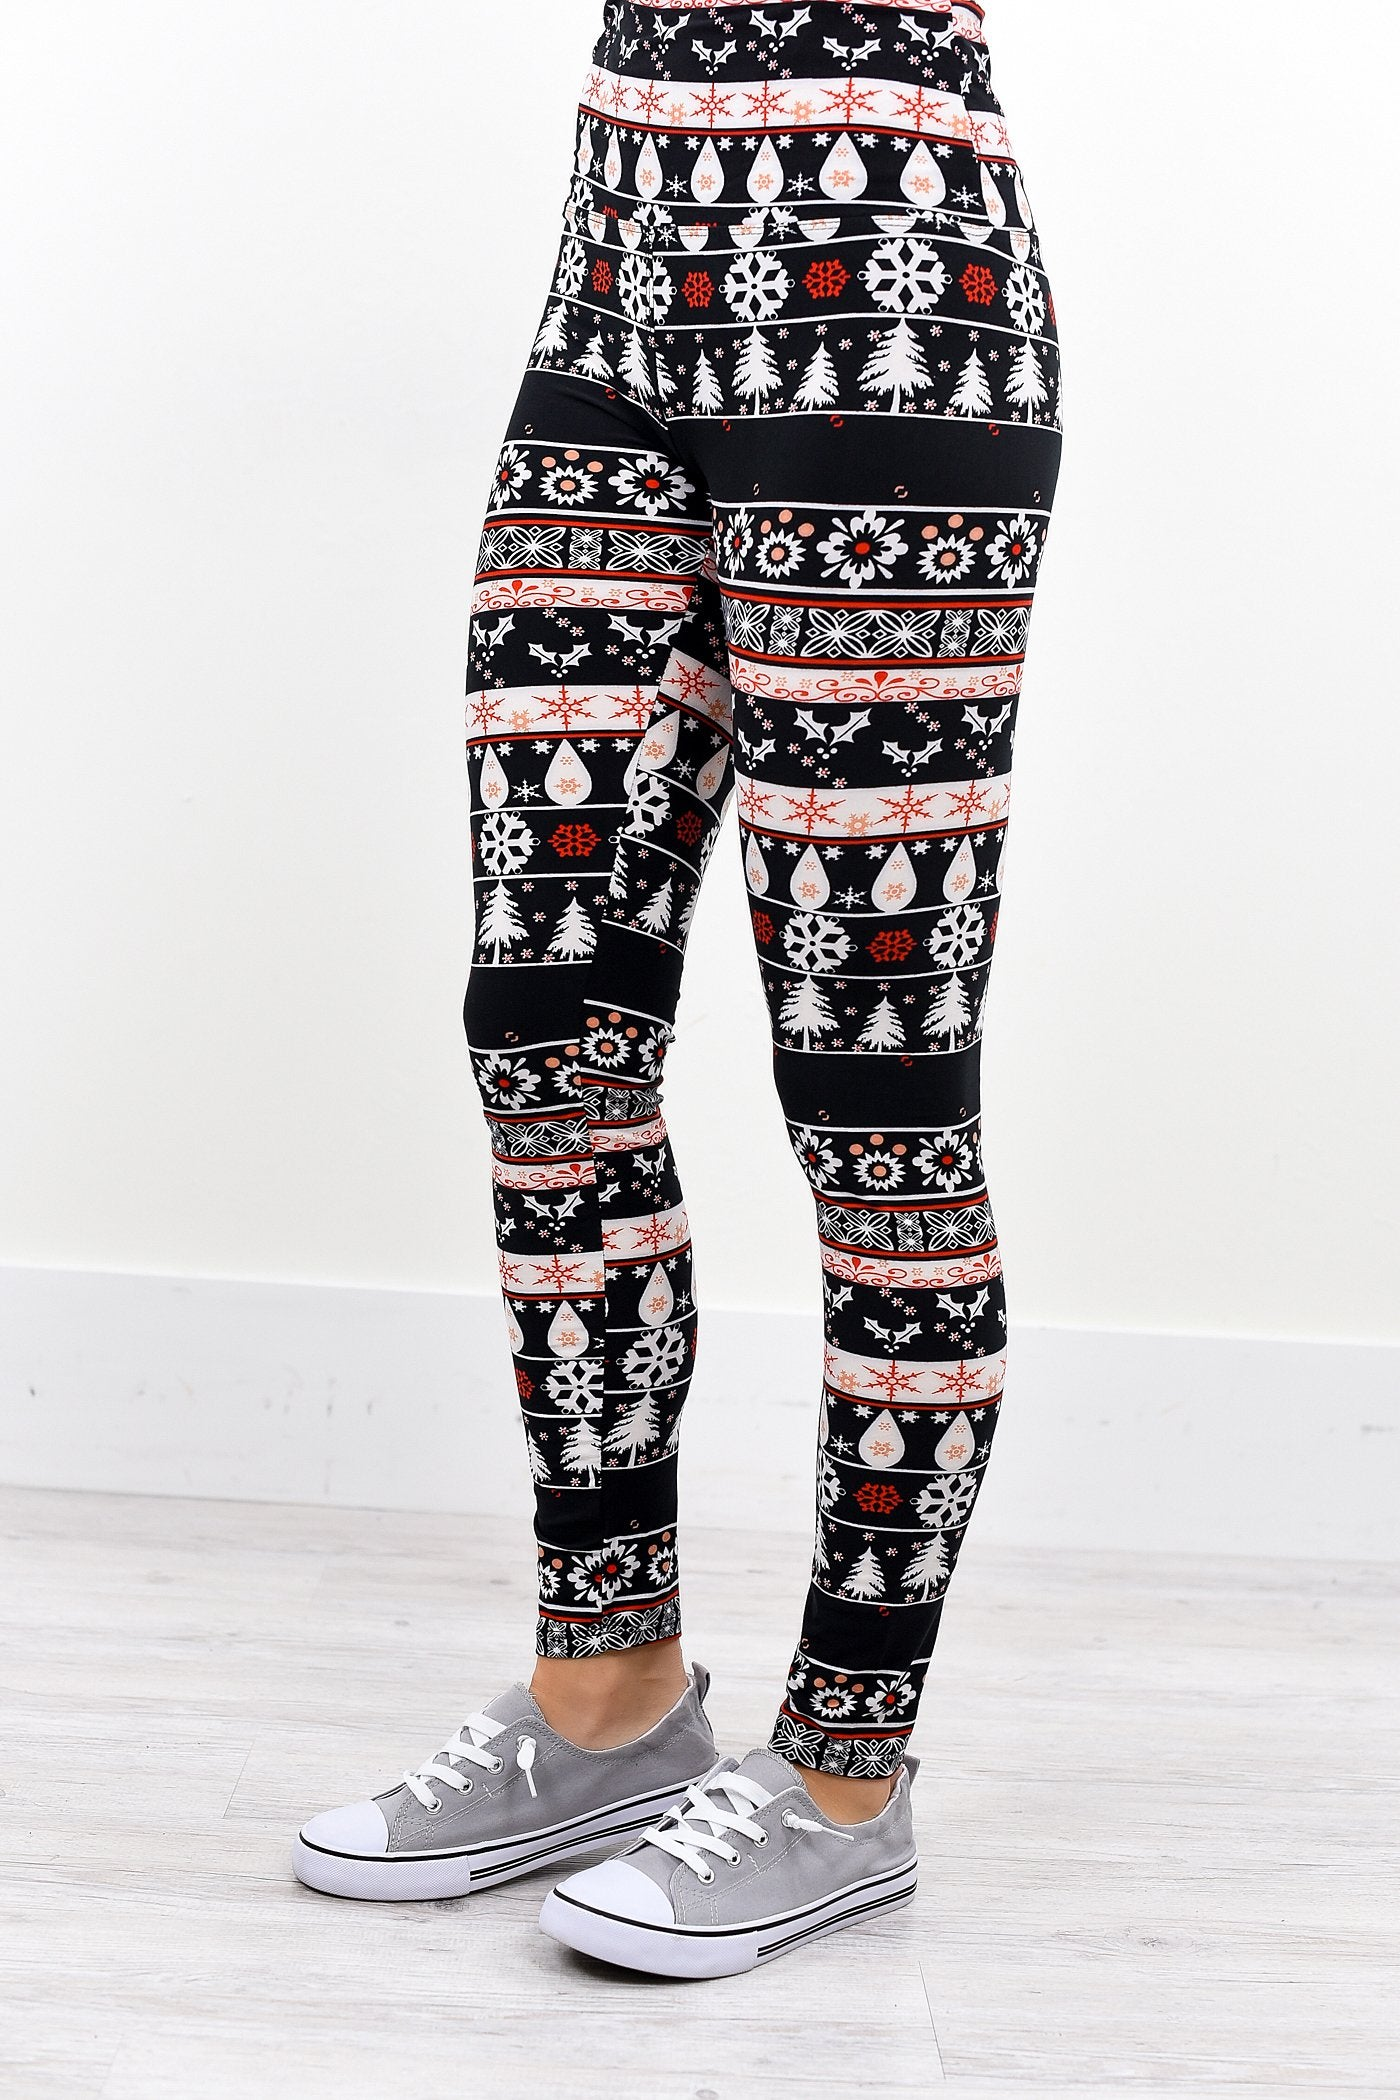 Black/White Snowflake/Multi Pattern Wide Band Printed Leggings (Sizes 4-12) - LEG2031BW